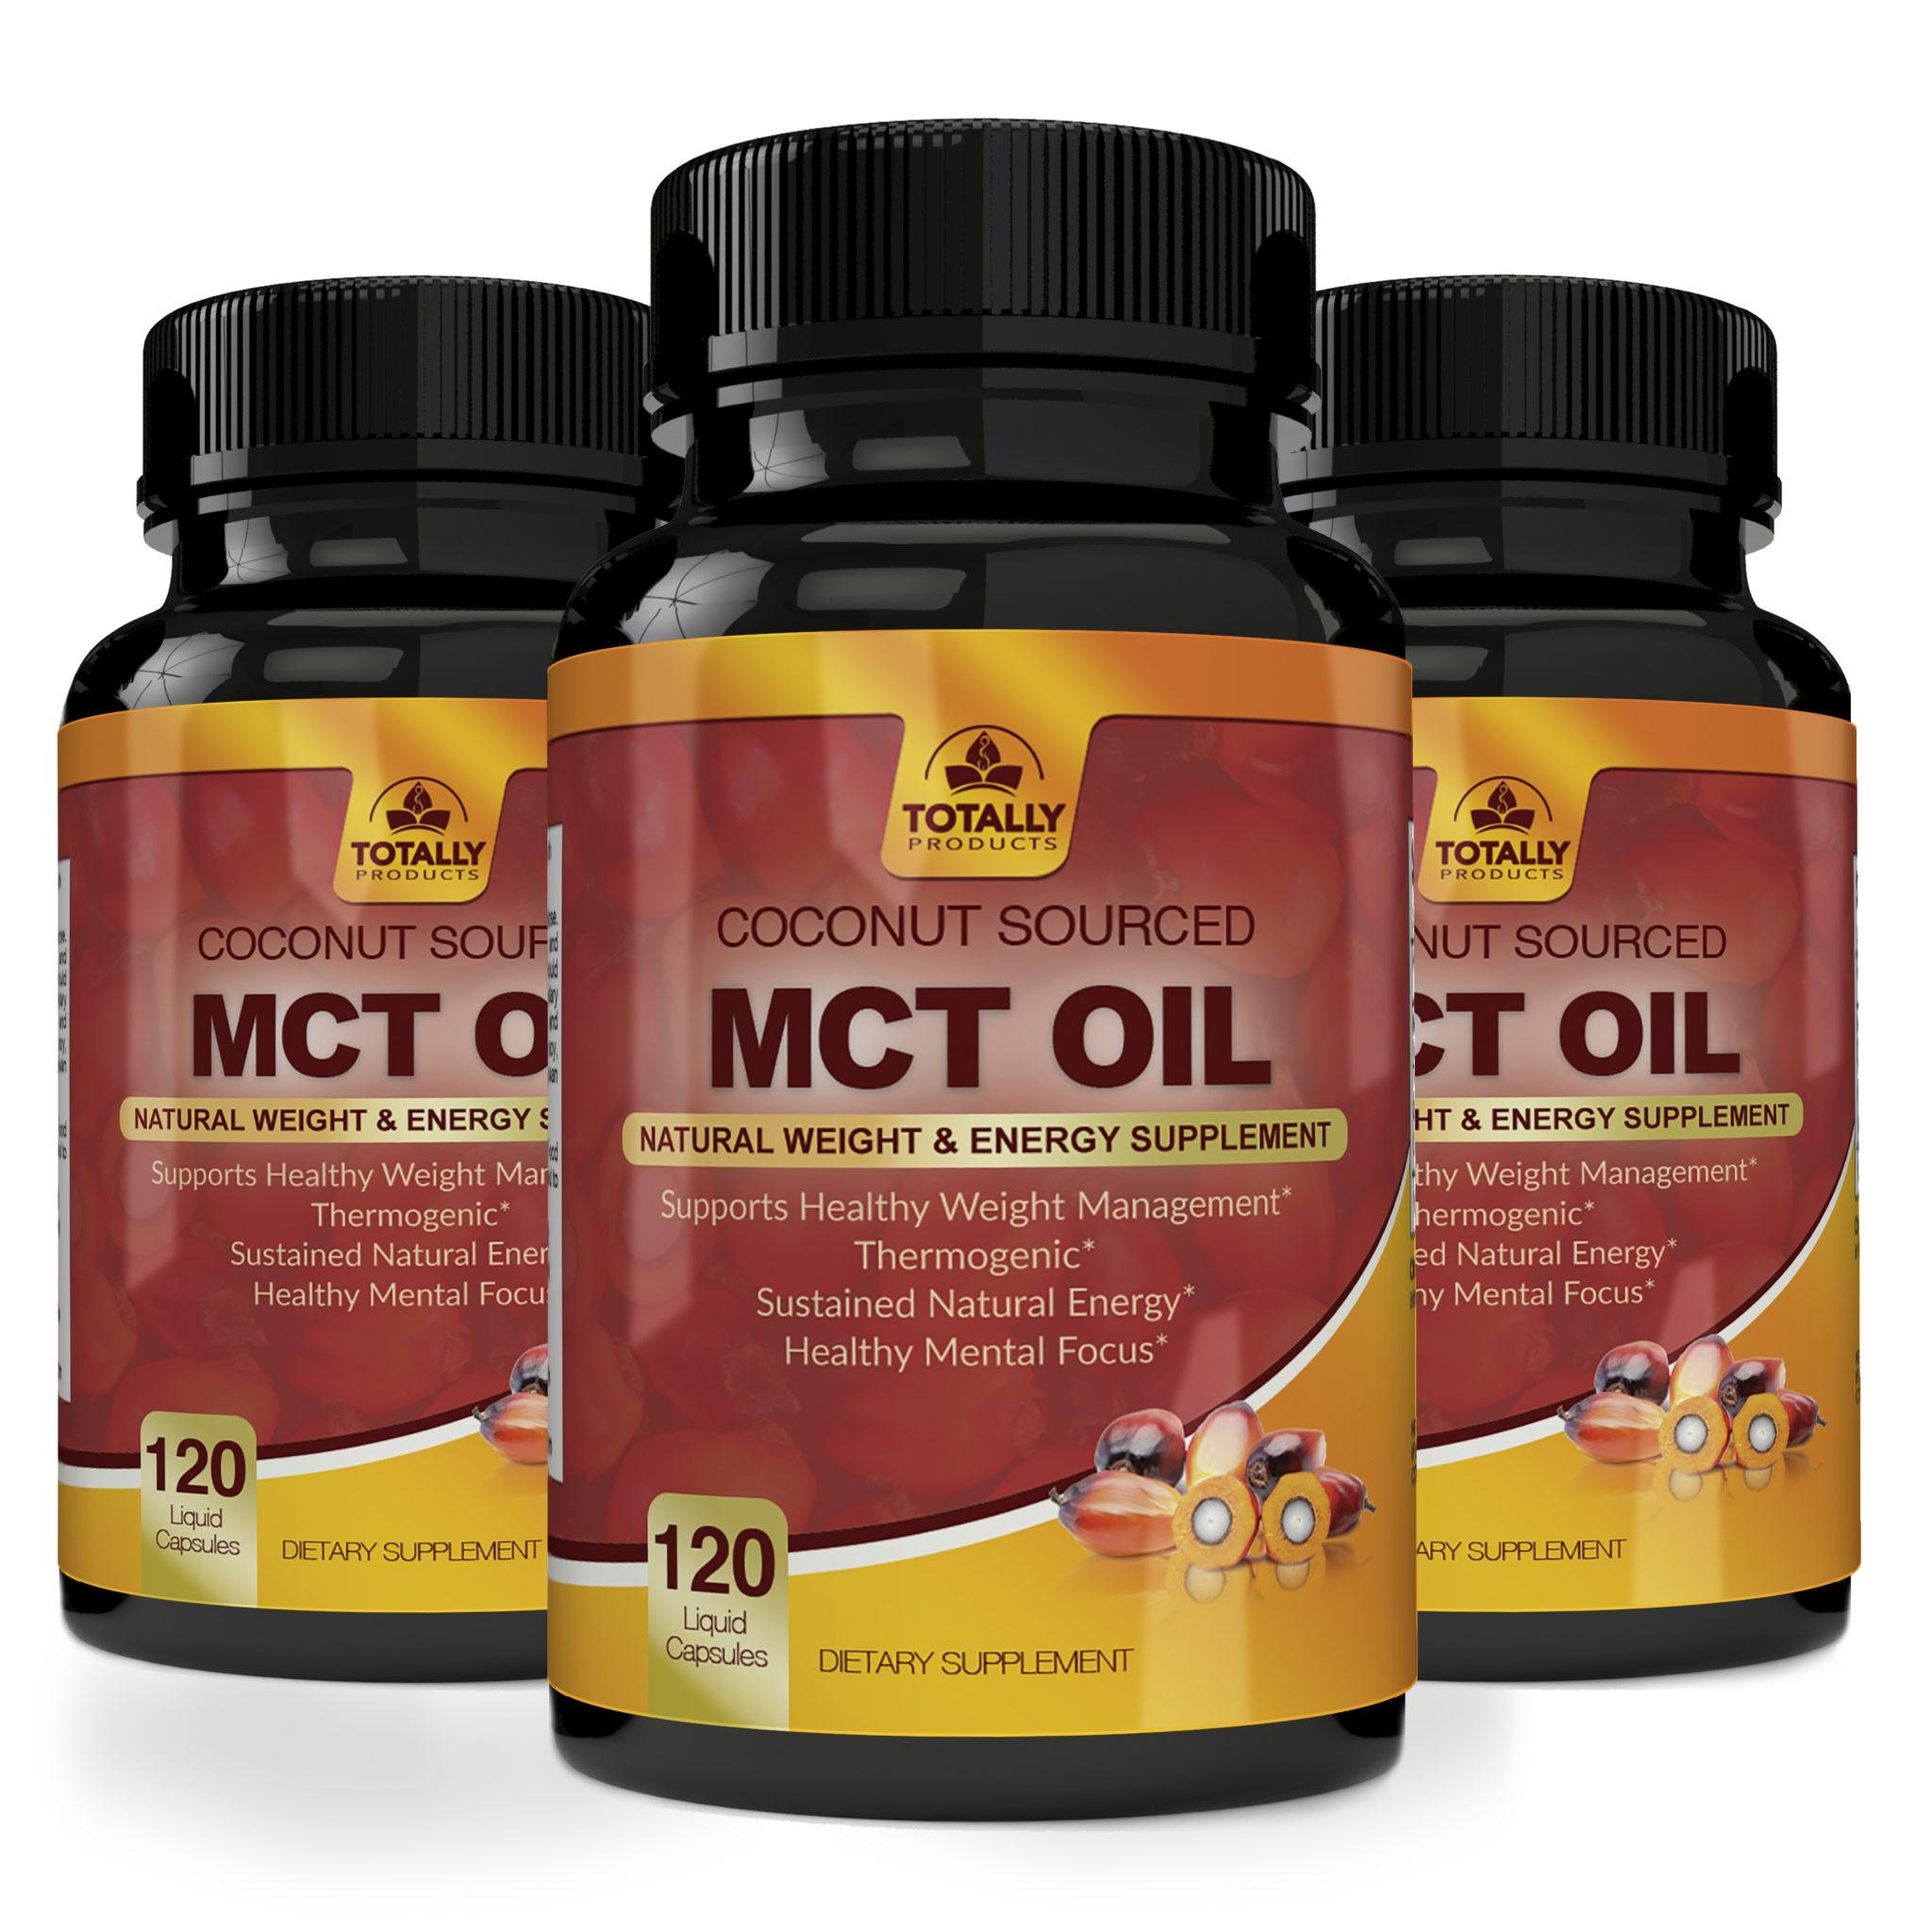 Totally Products Premium MCT OIL 3000mg for Energy and Weight Management (60 Softgels) - 3 Bottles